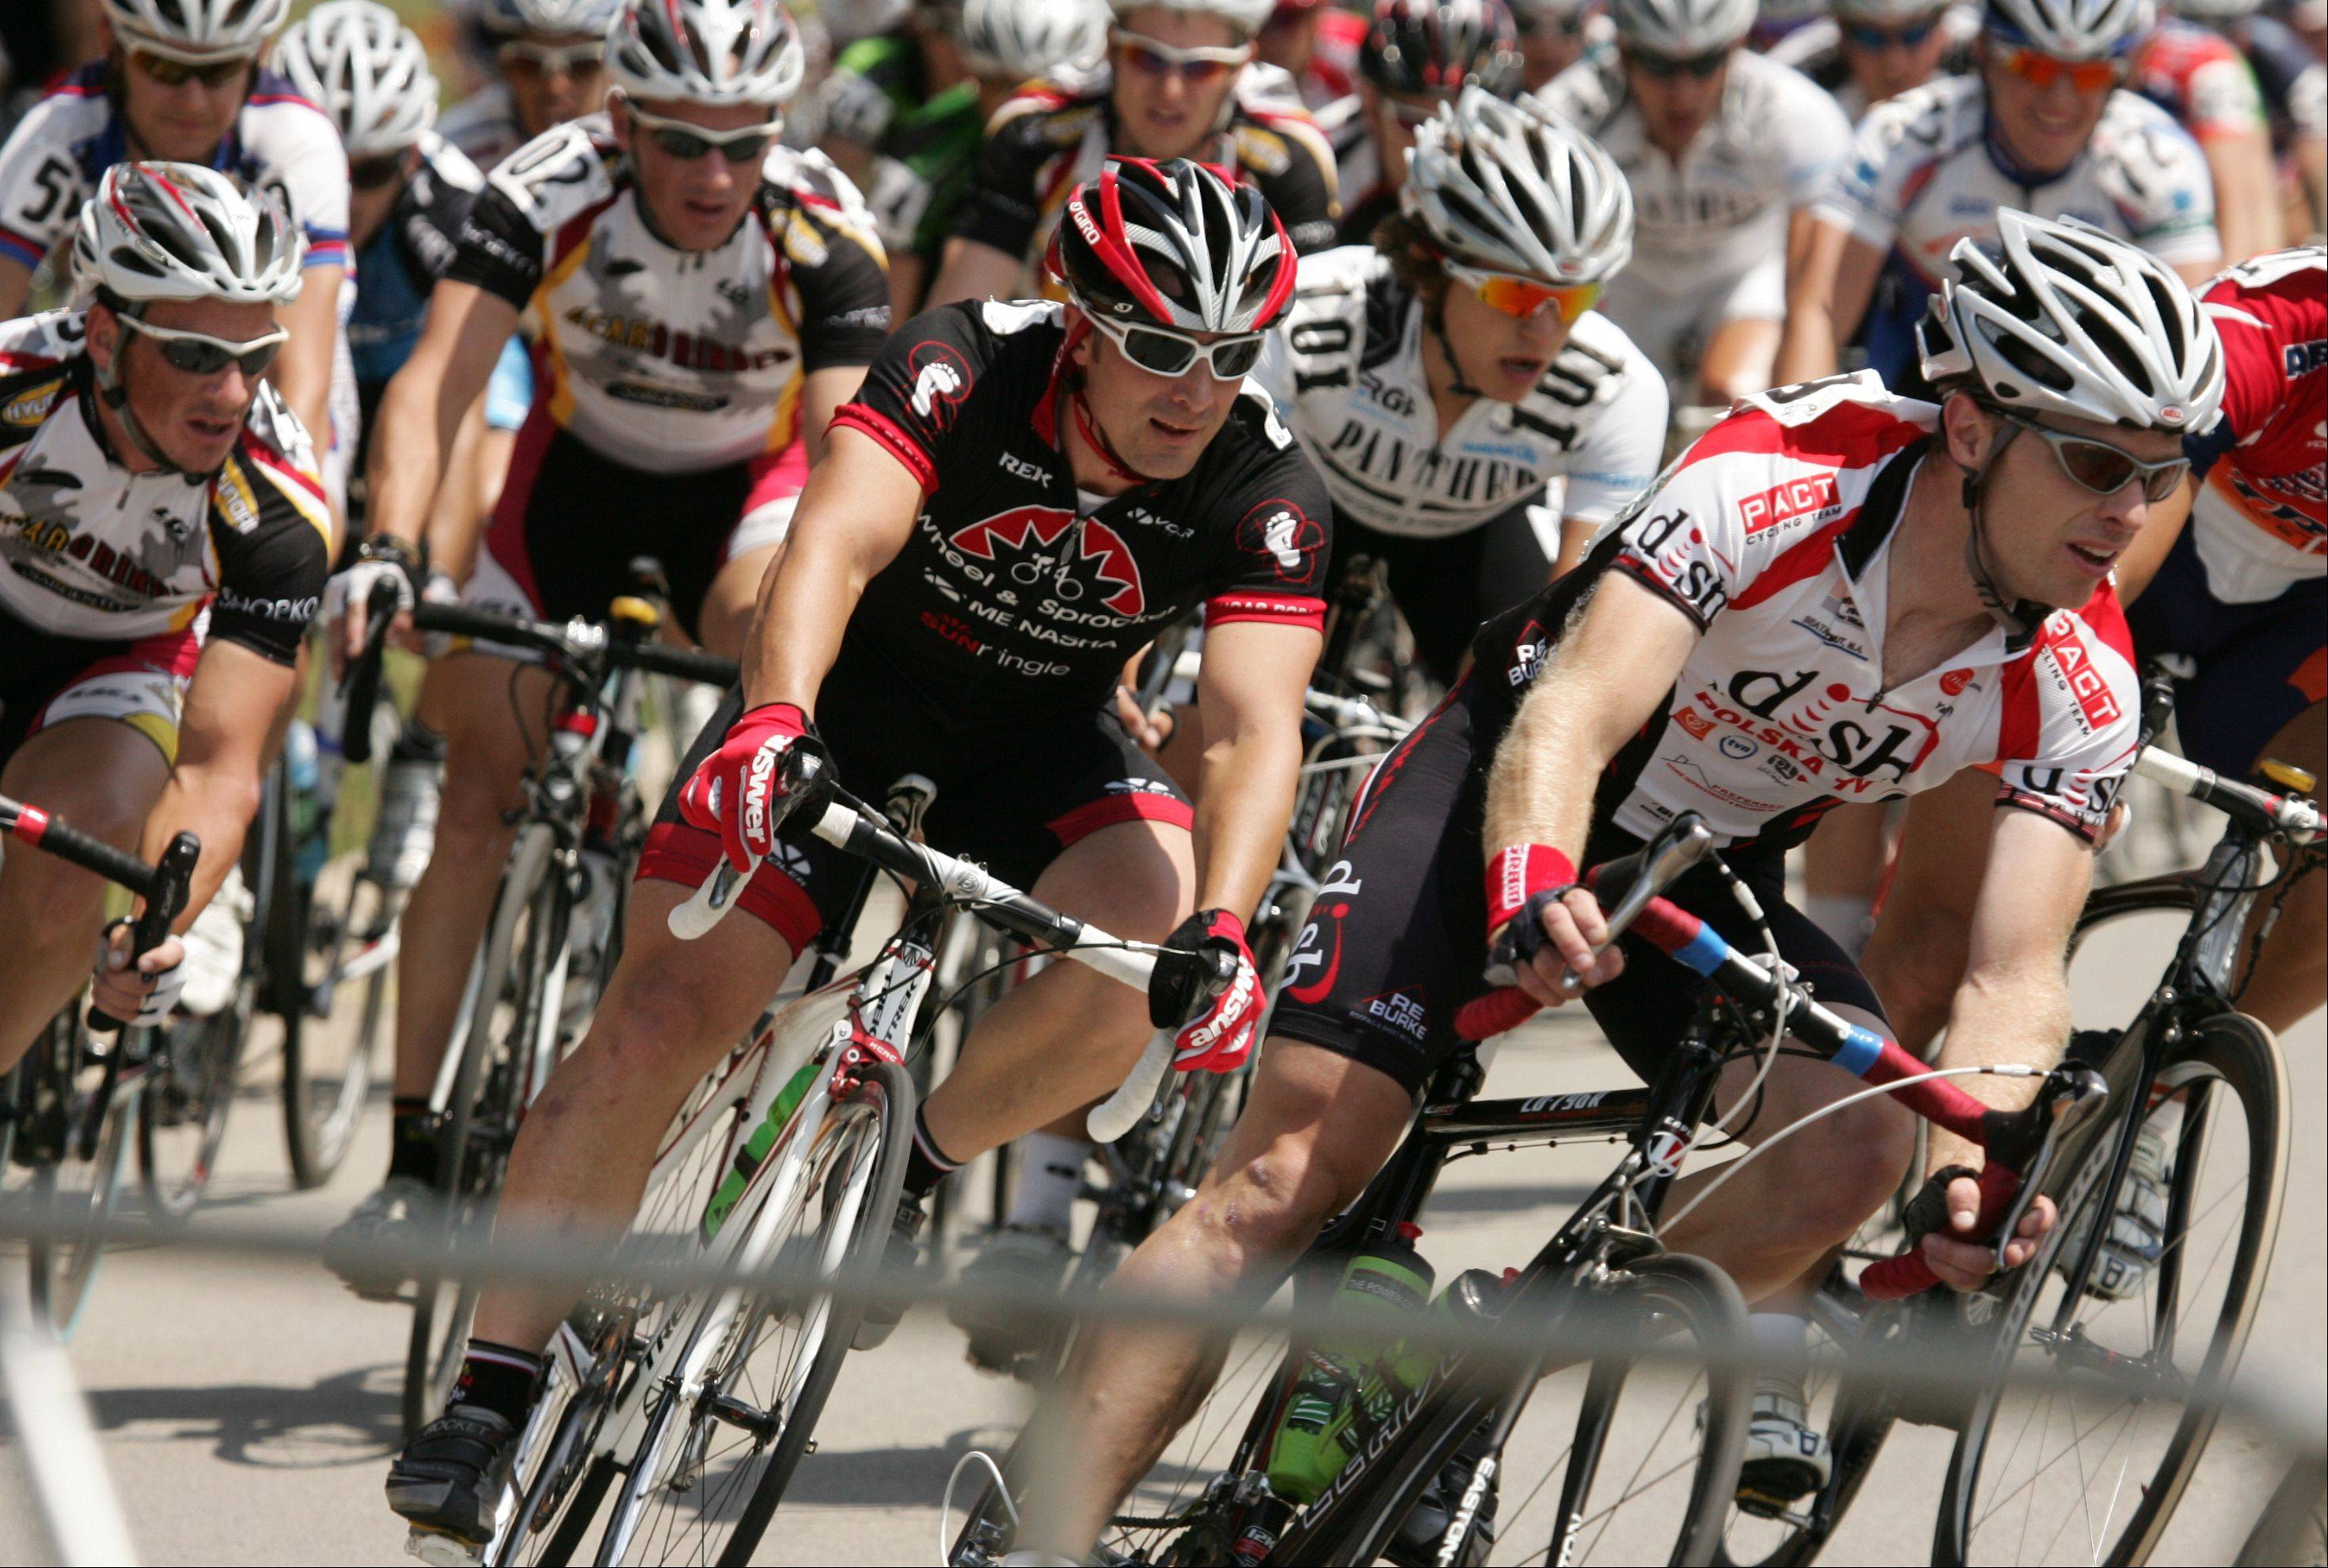 Bike-race organizers from Wisconsin are trying to convince Wauconda officials the village should hold an annual criterium race, drawing on the success that Elk Grove Village has had.